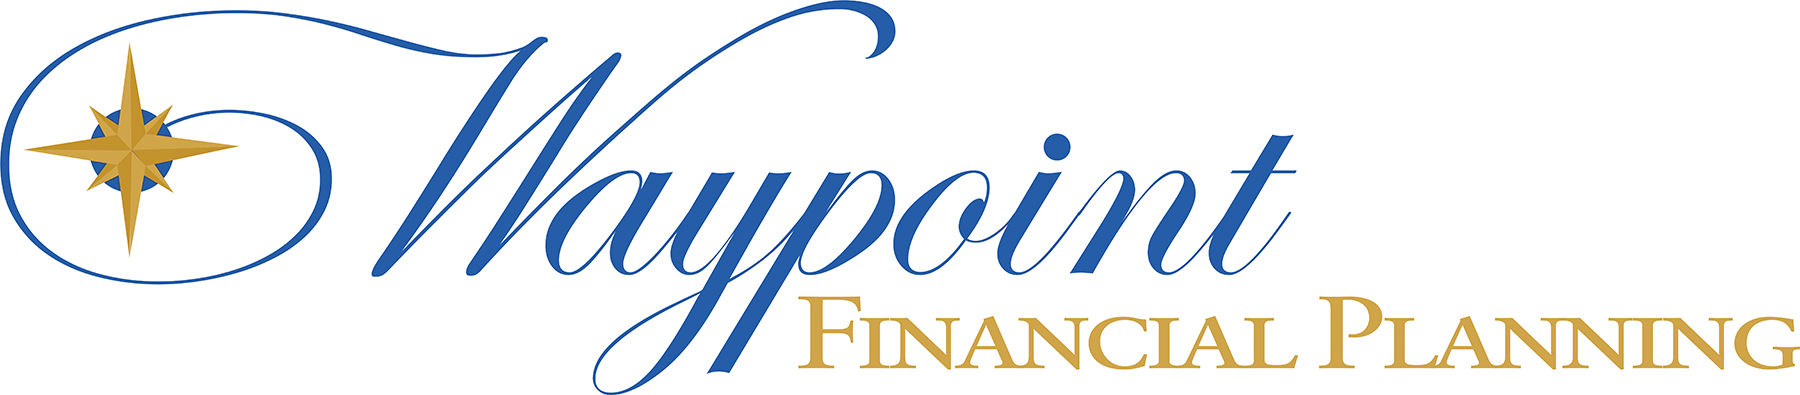 Waypoint Financial Planning